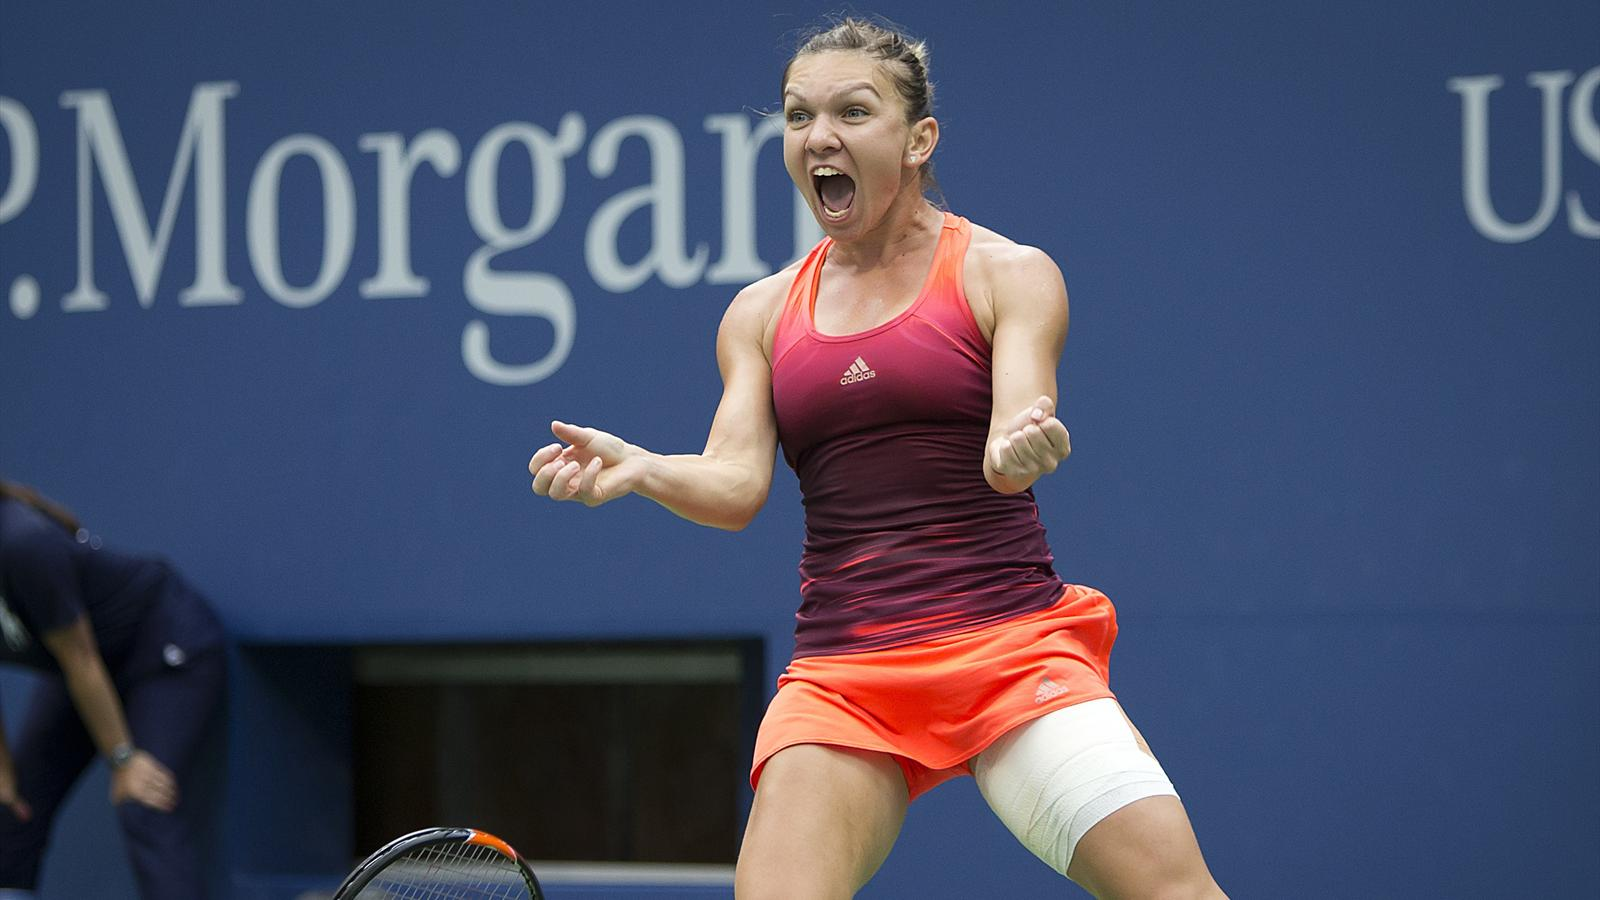 Simona Halep of Romania celebrates after defeating Victoria Azarenka of Belarus in their quarterfinals match at the U.S. Open Championships tennis tournament in New York